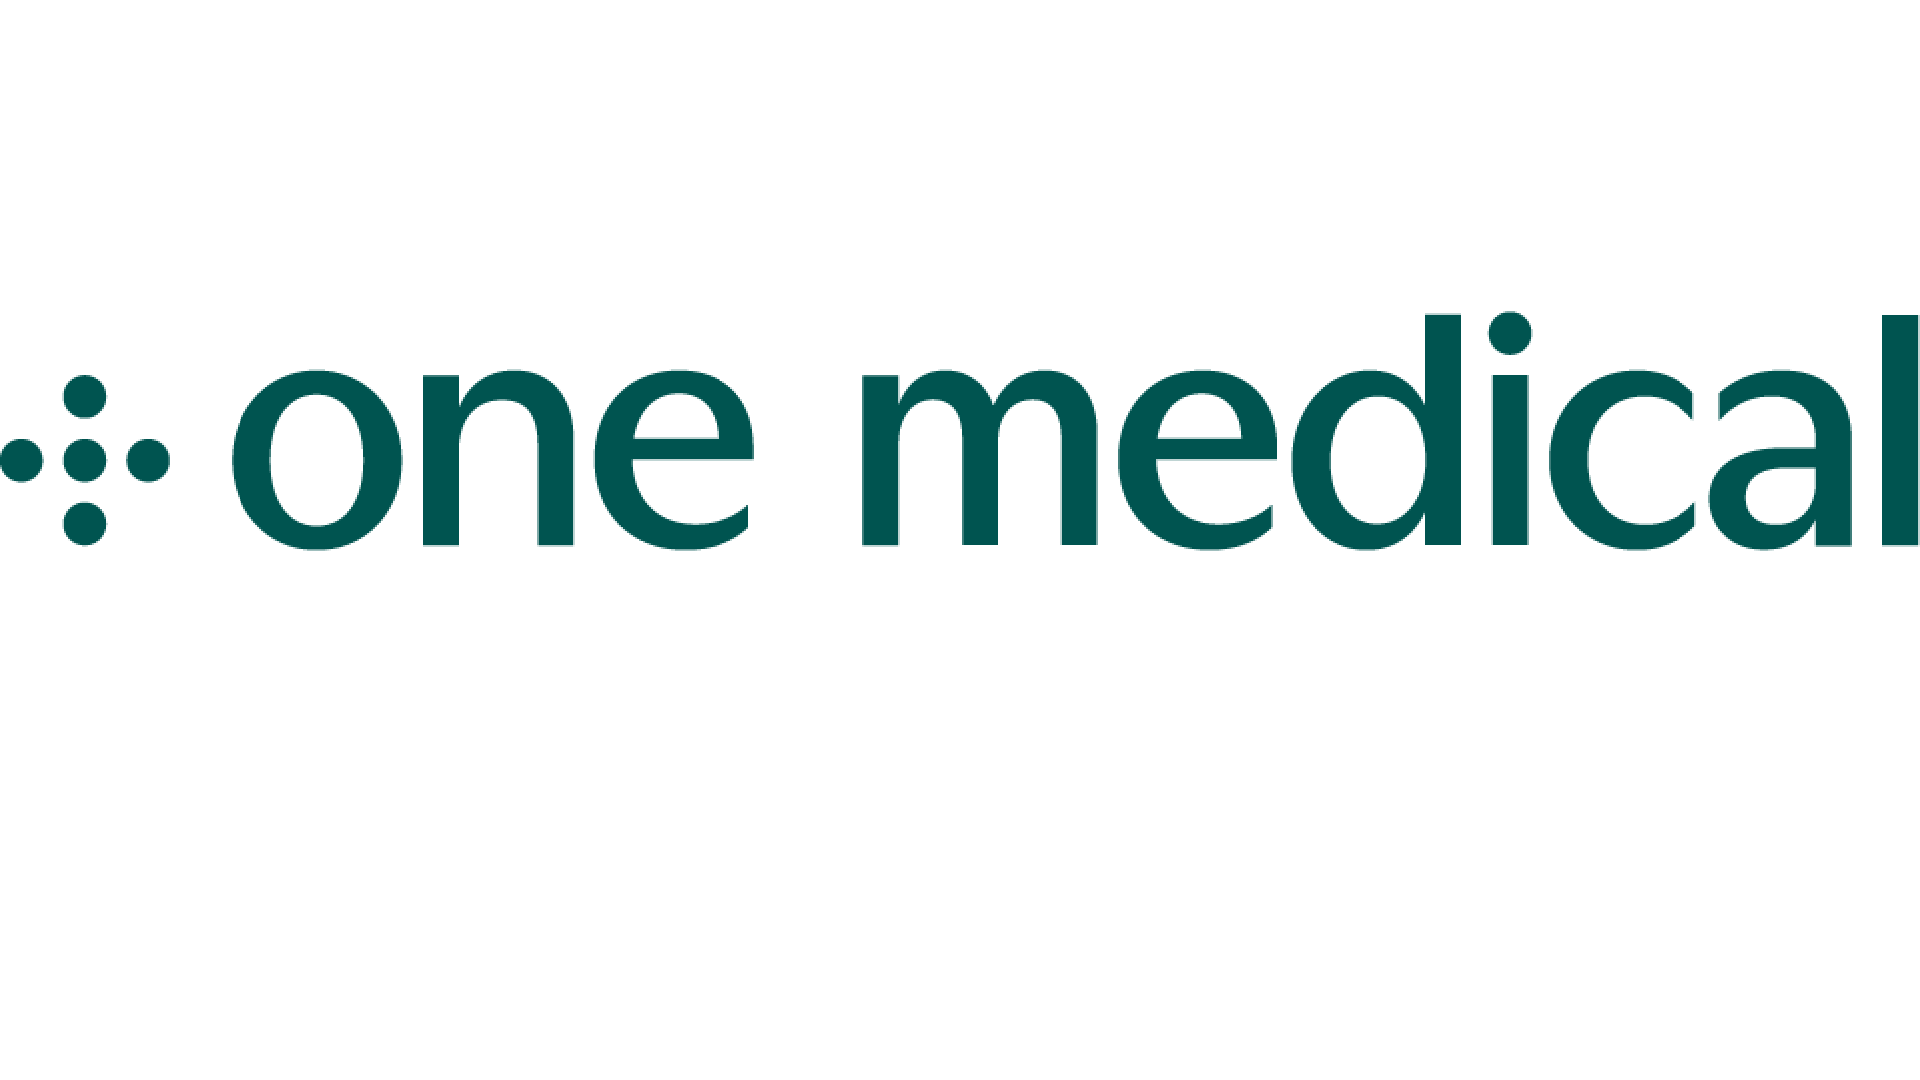 OneMedical_Web.png